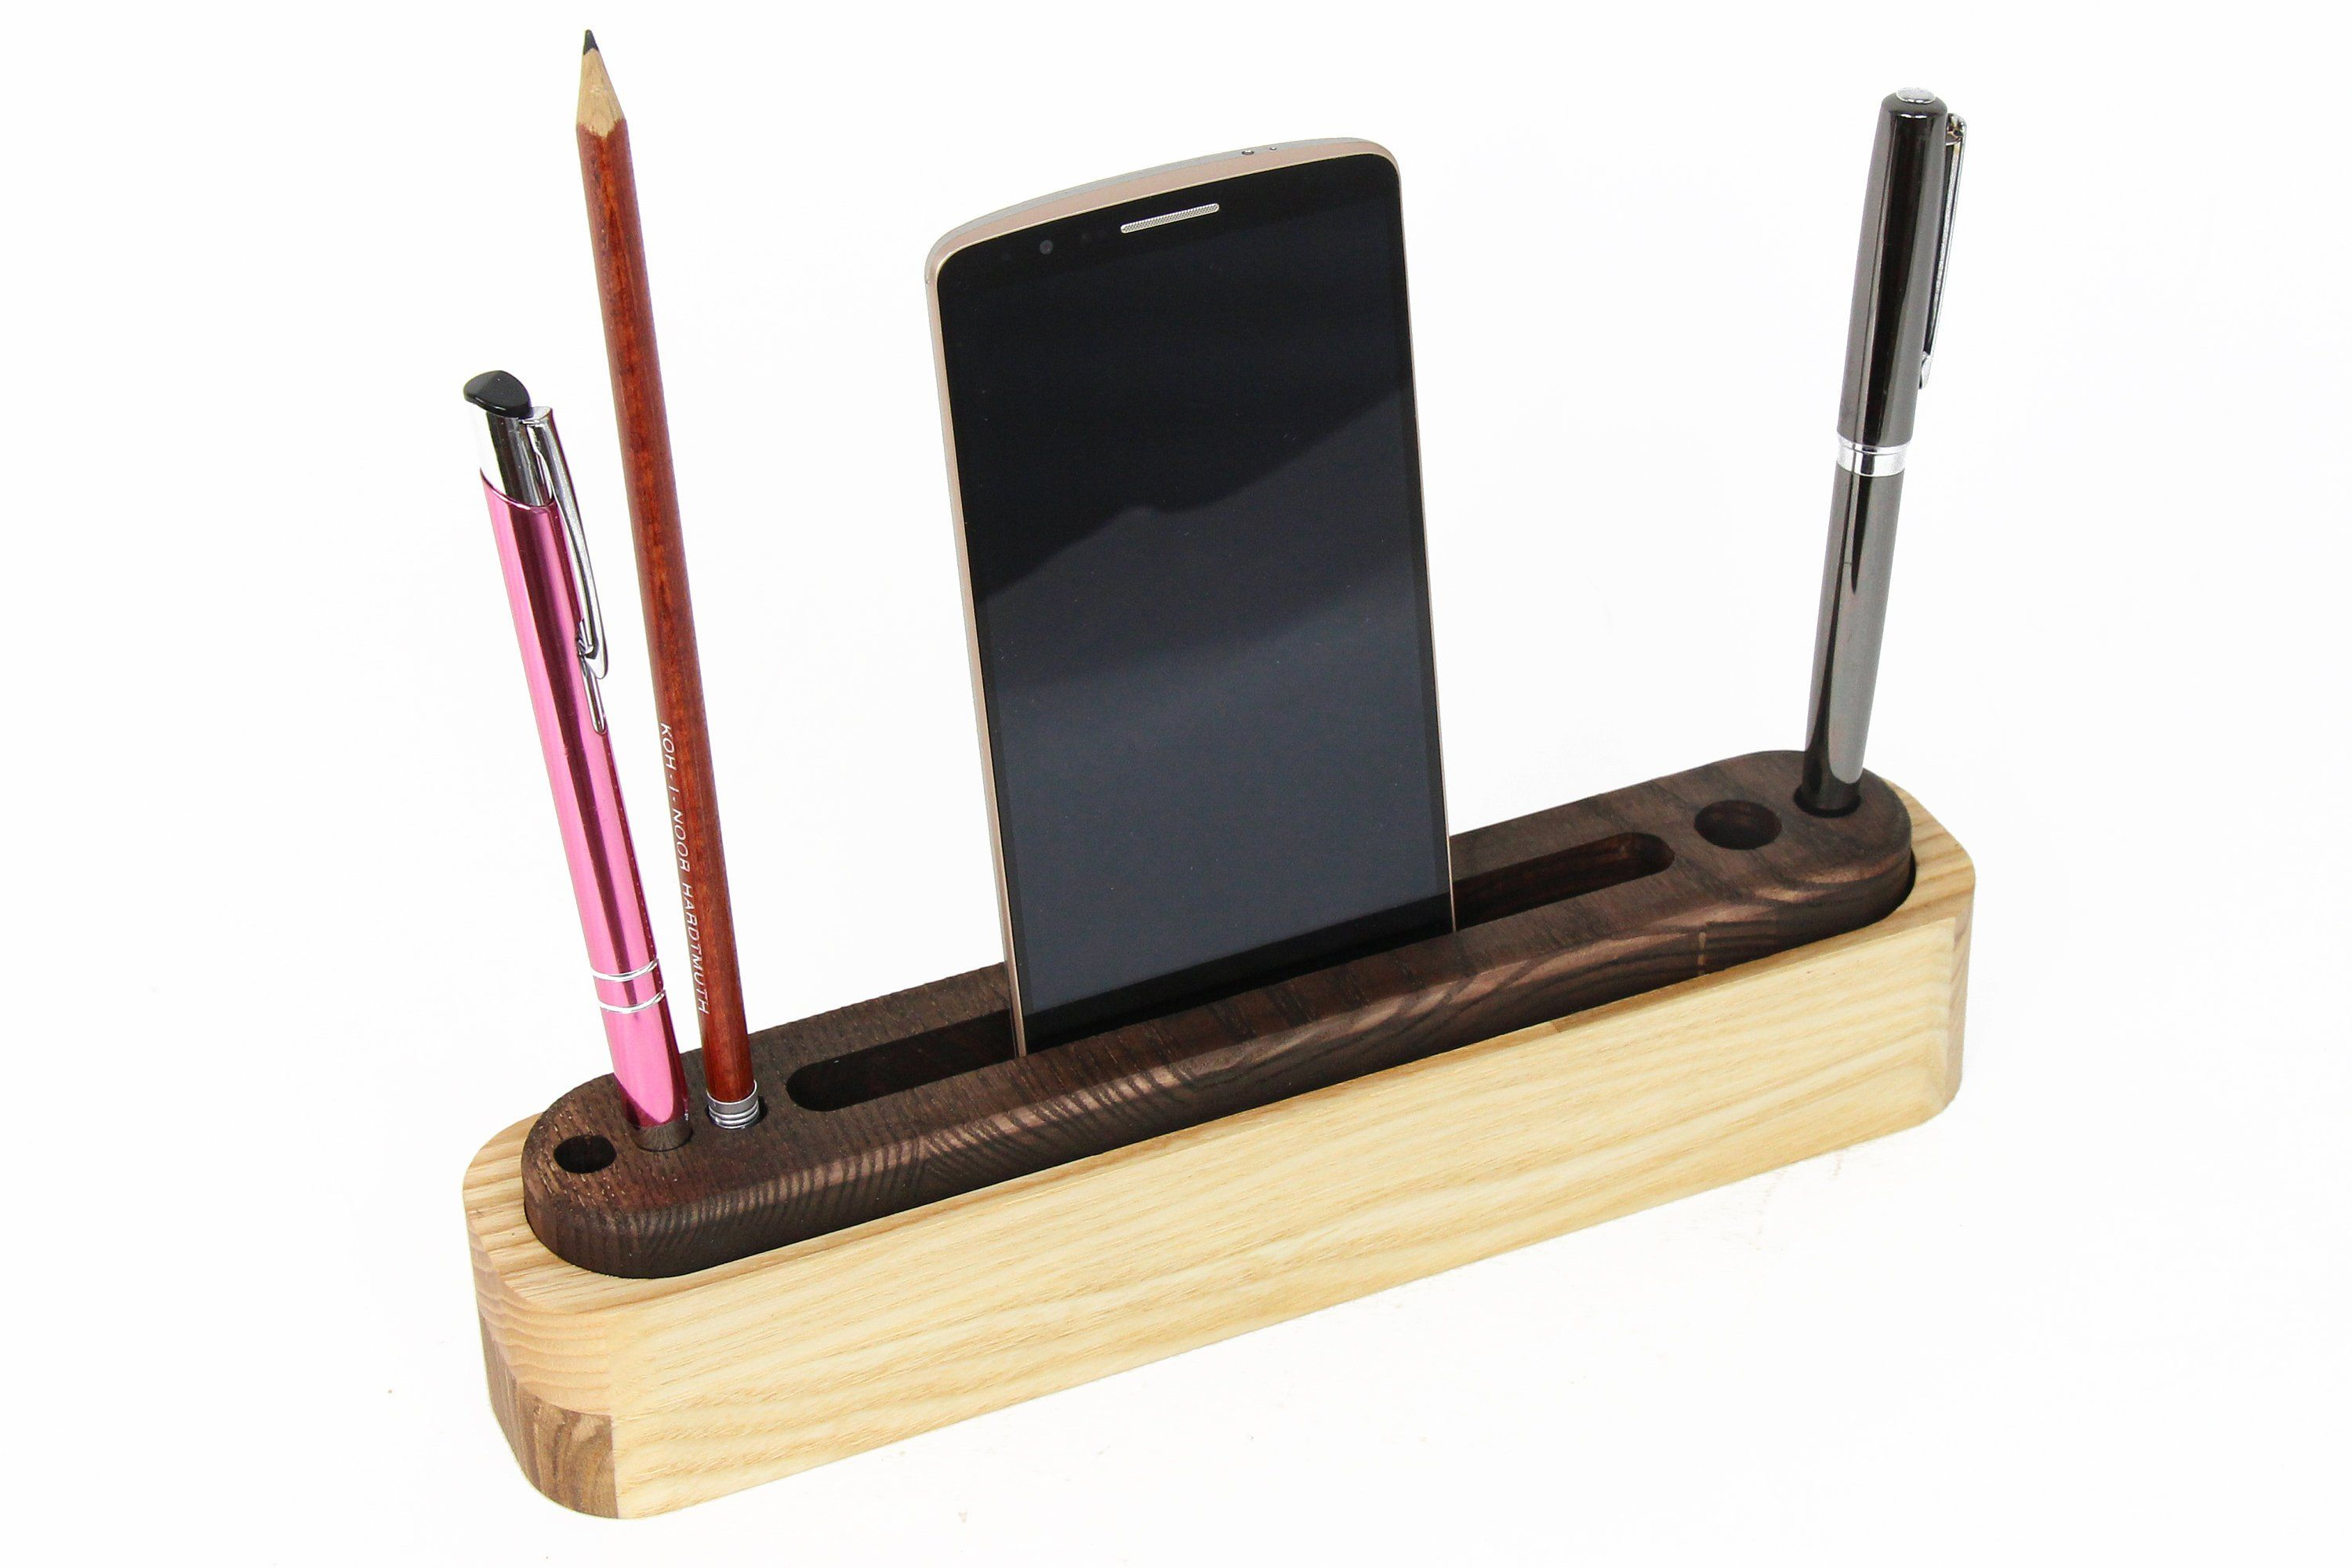 Wood Organizer Wooden Desk Organizer Office Desk Accessories Desk